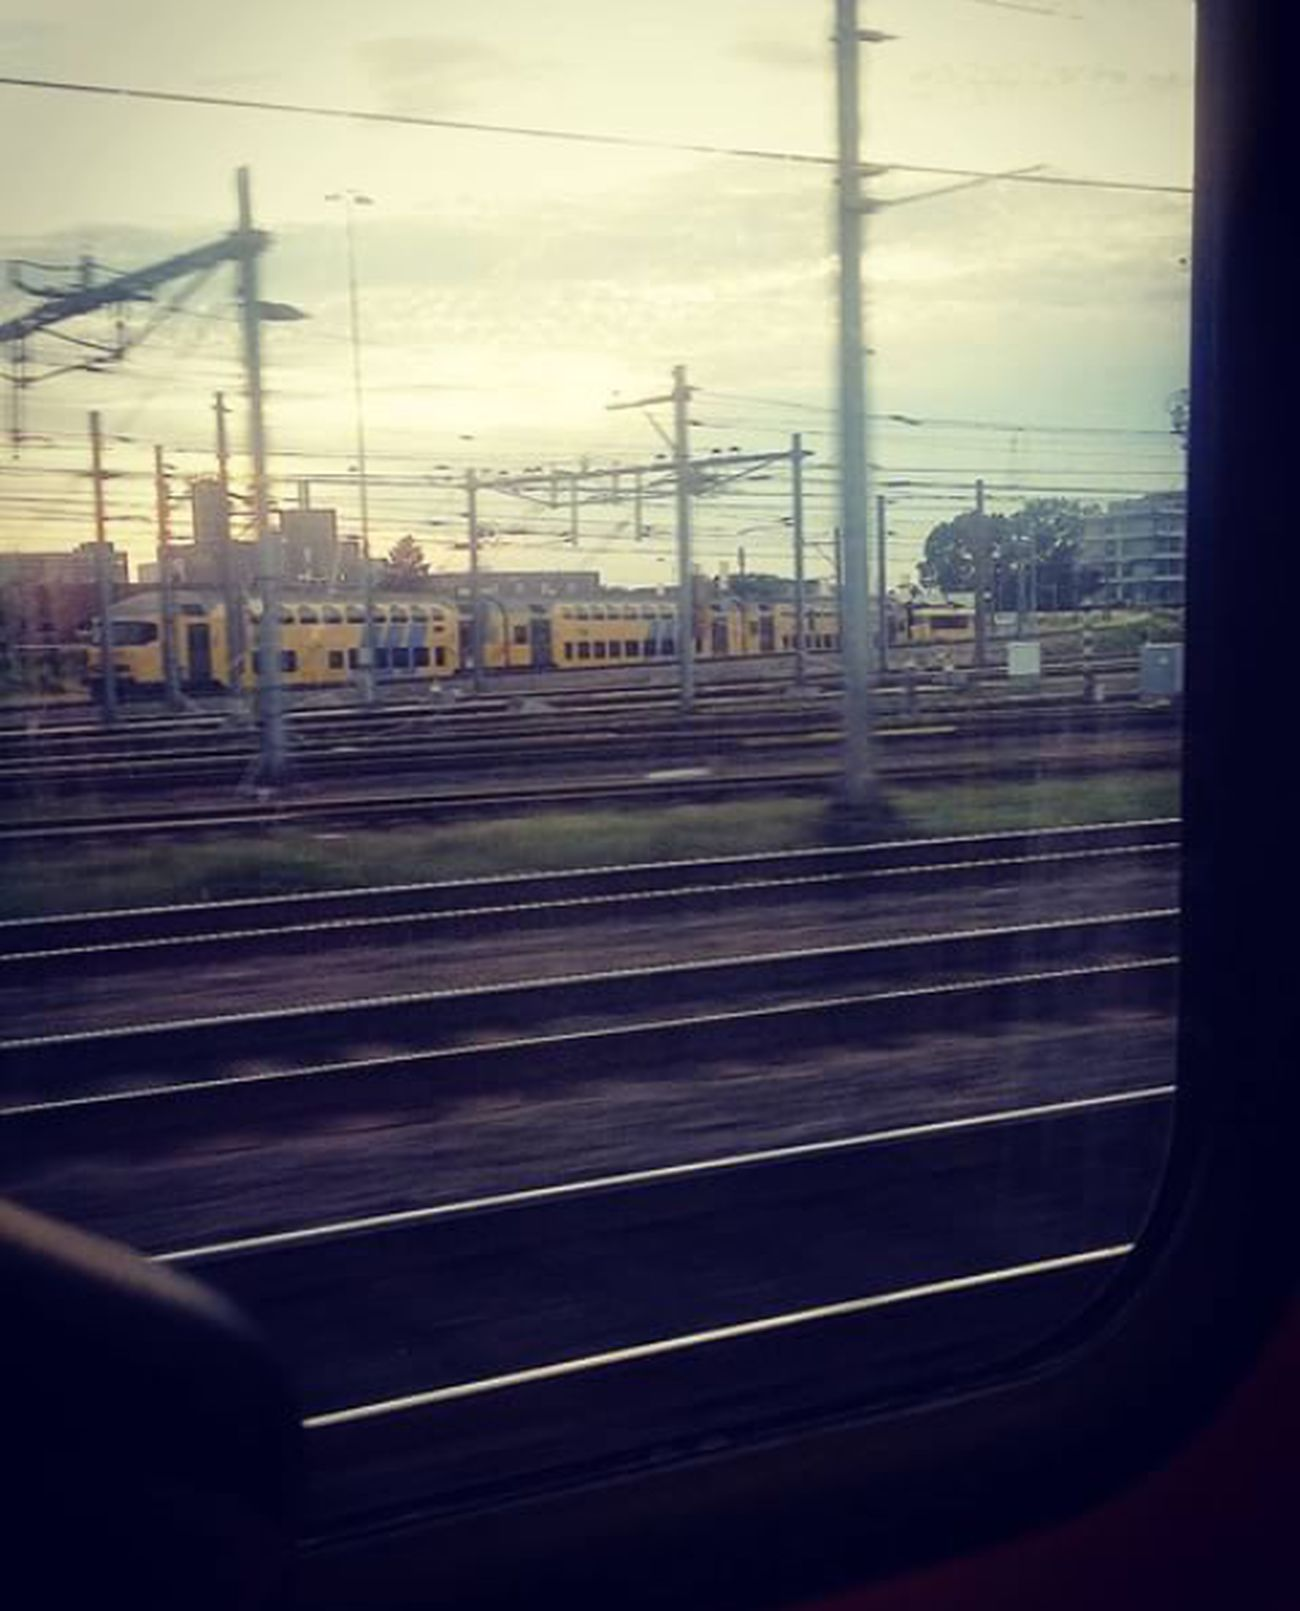 Commuting Public Transportation Train Going Home Trainride Maastricht Streetphotography Fresh On Eyeem  Railroad Track Railway Railroad Station Railway Station On The Way